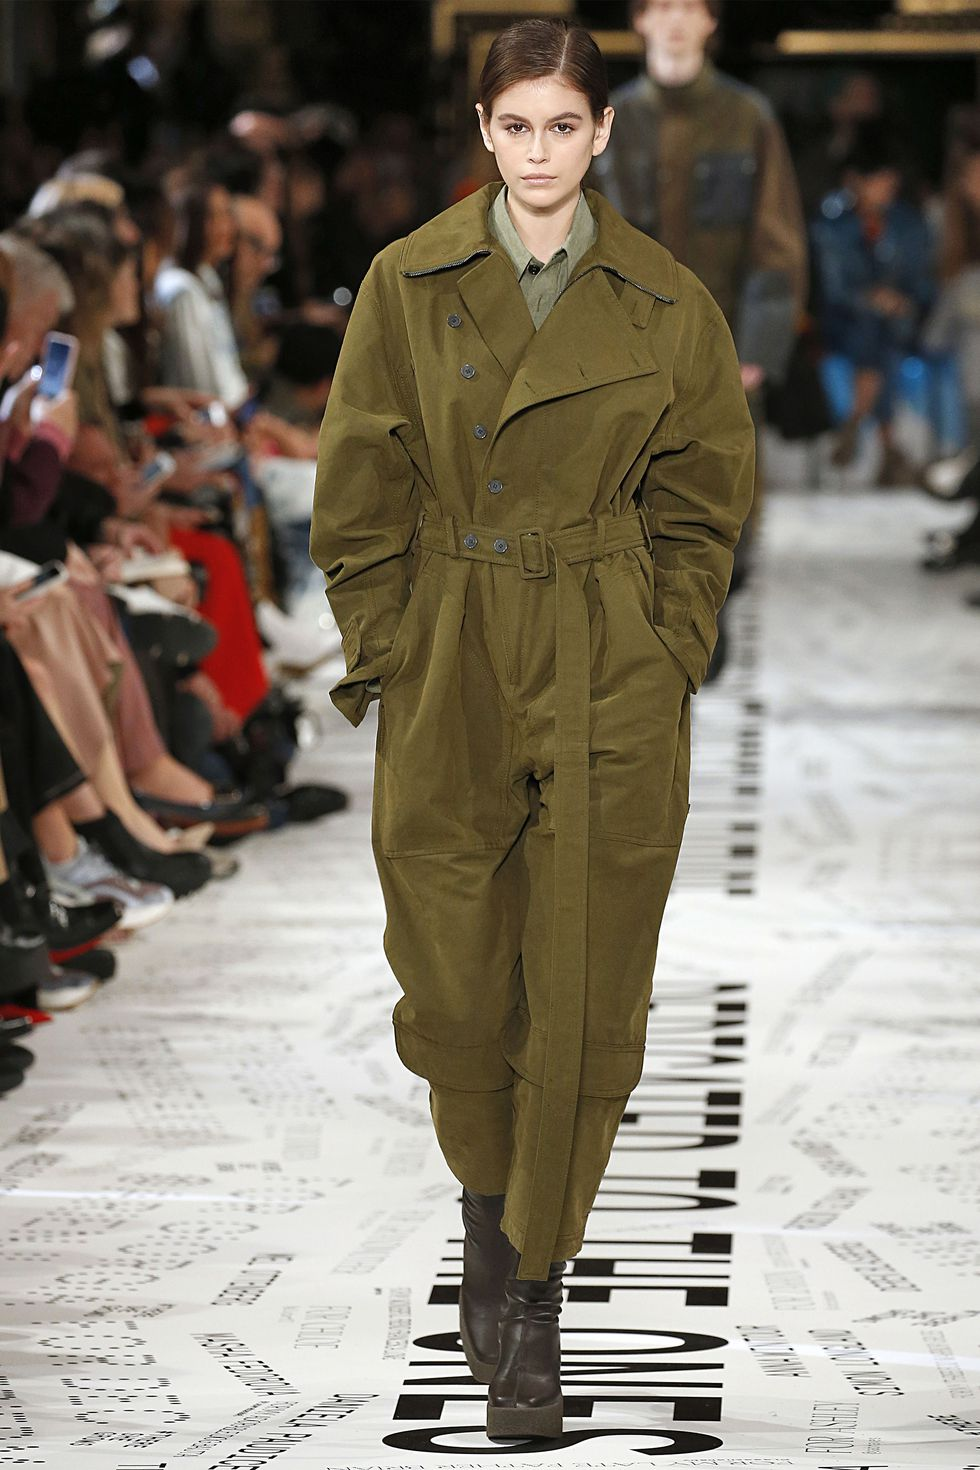 hbz-fw2019-trends-army-01-gettyimages-1133599846.jpg